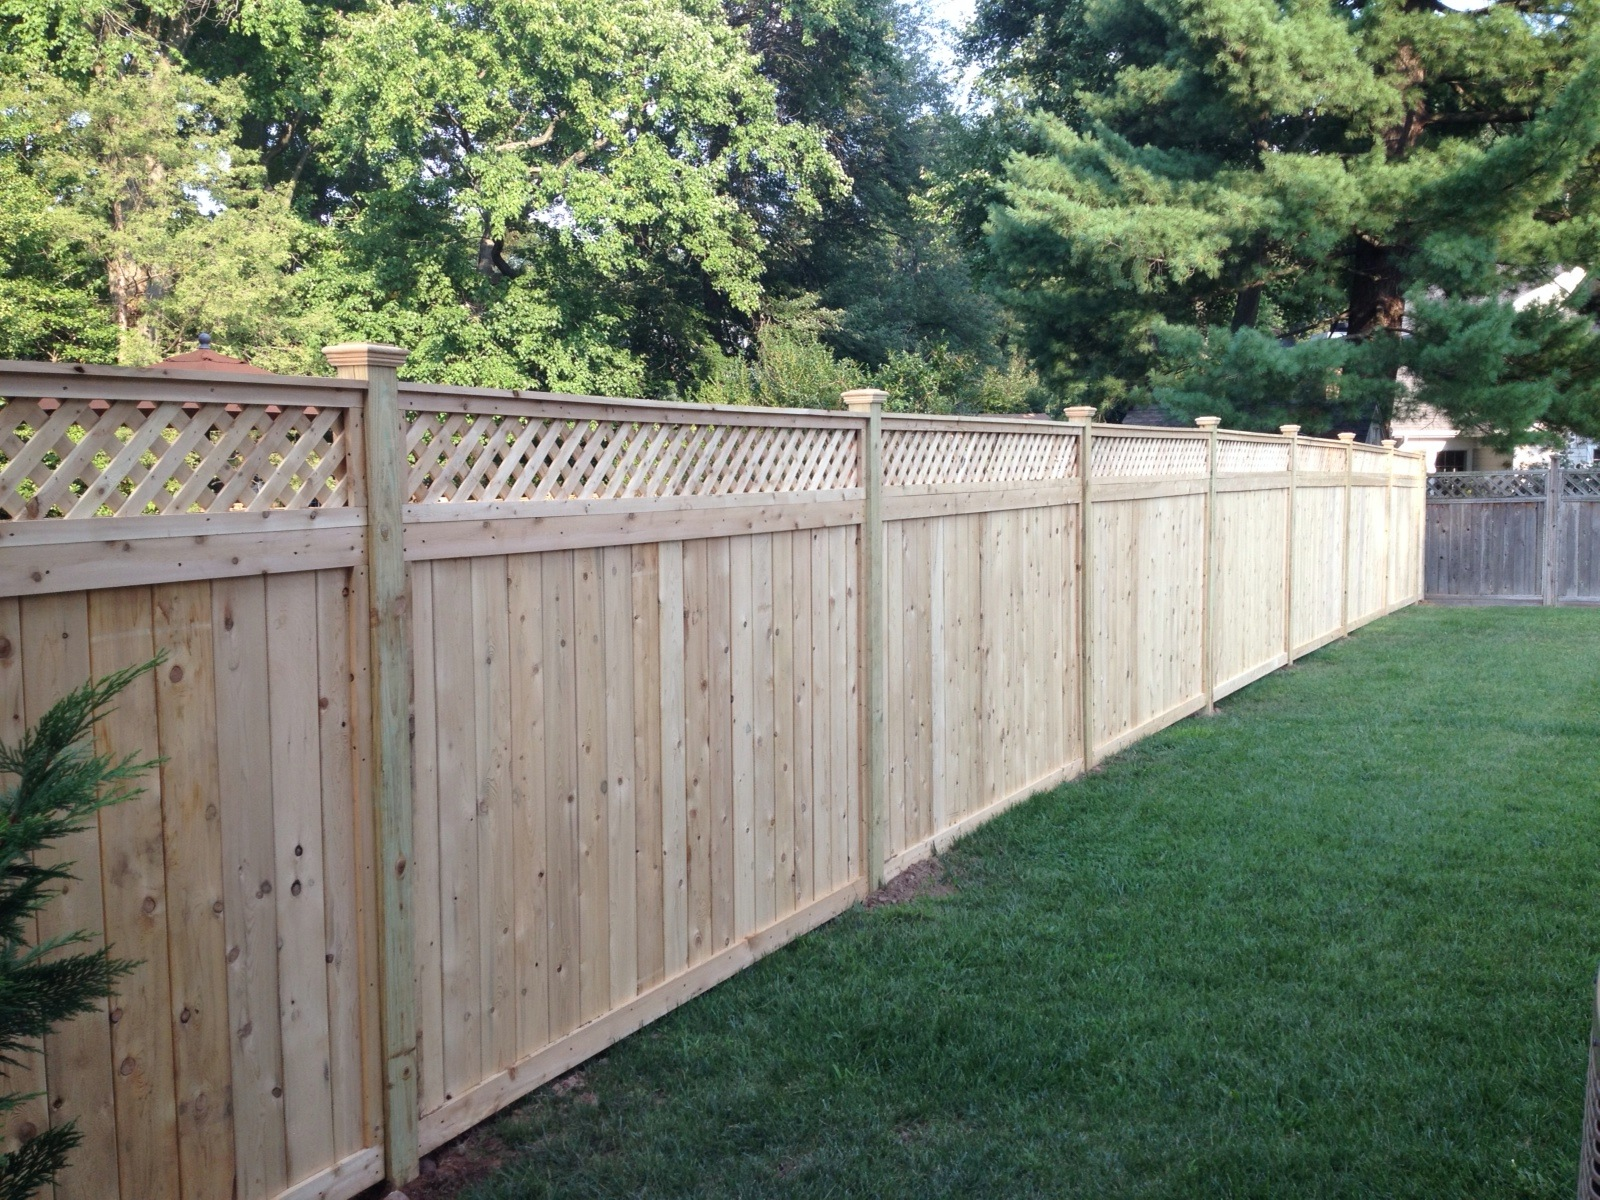 Yard clipart tall fence. Nj company located in